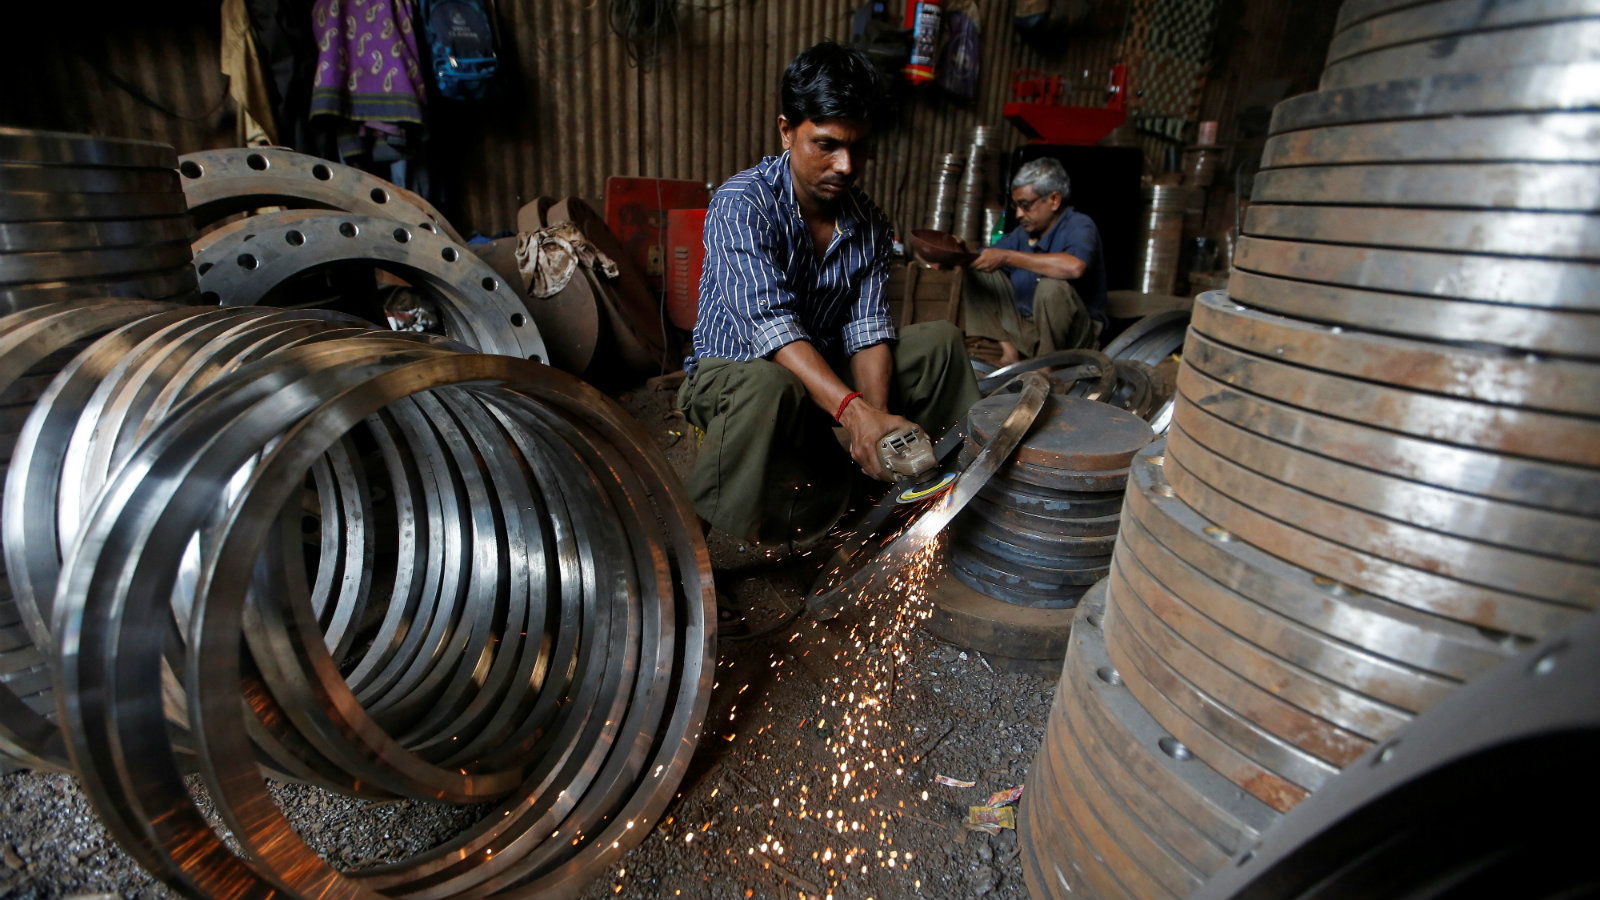 India's unhealthy workforce stands in the way of economic growth